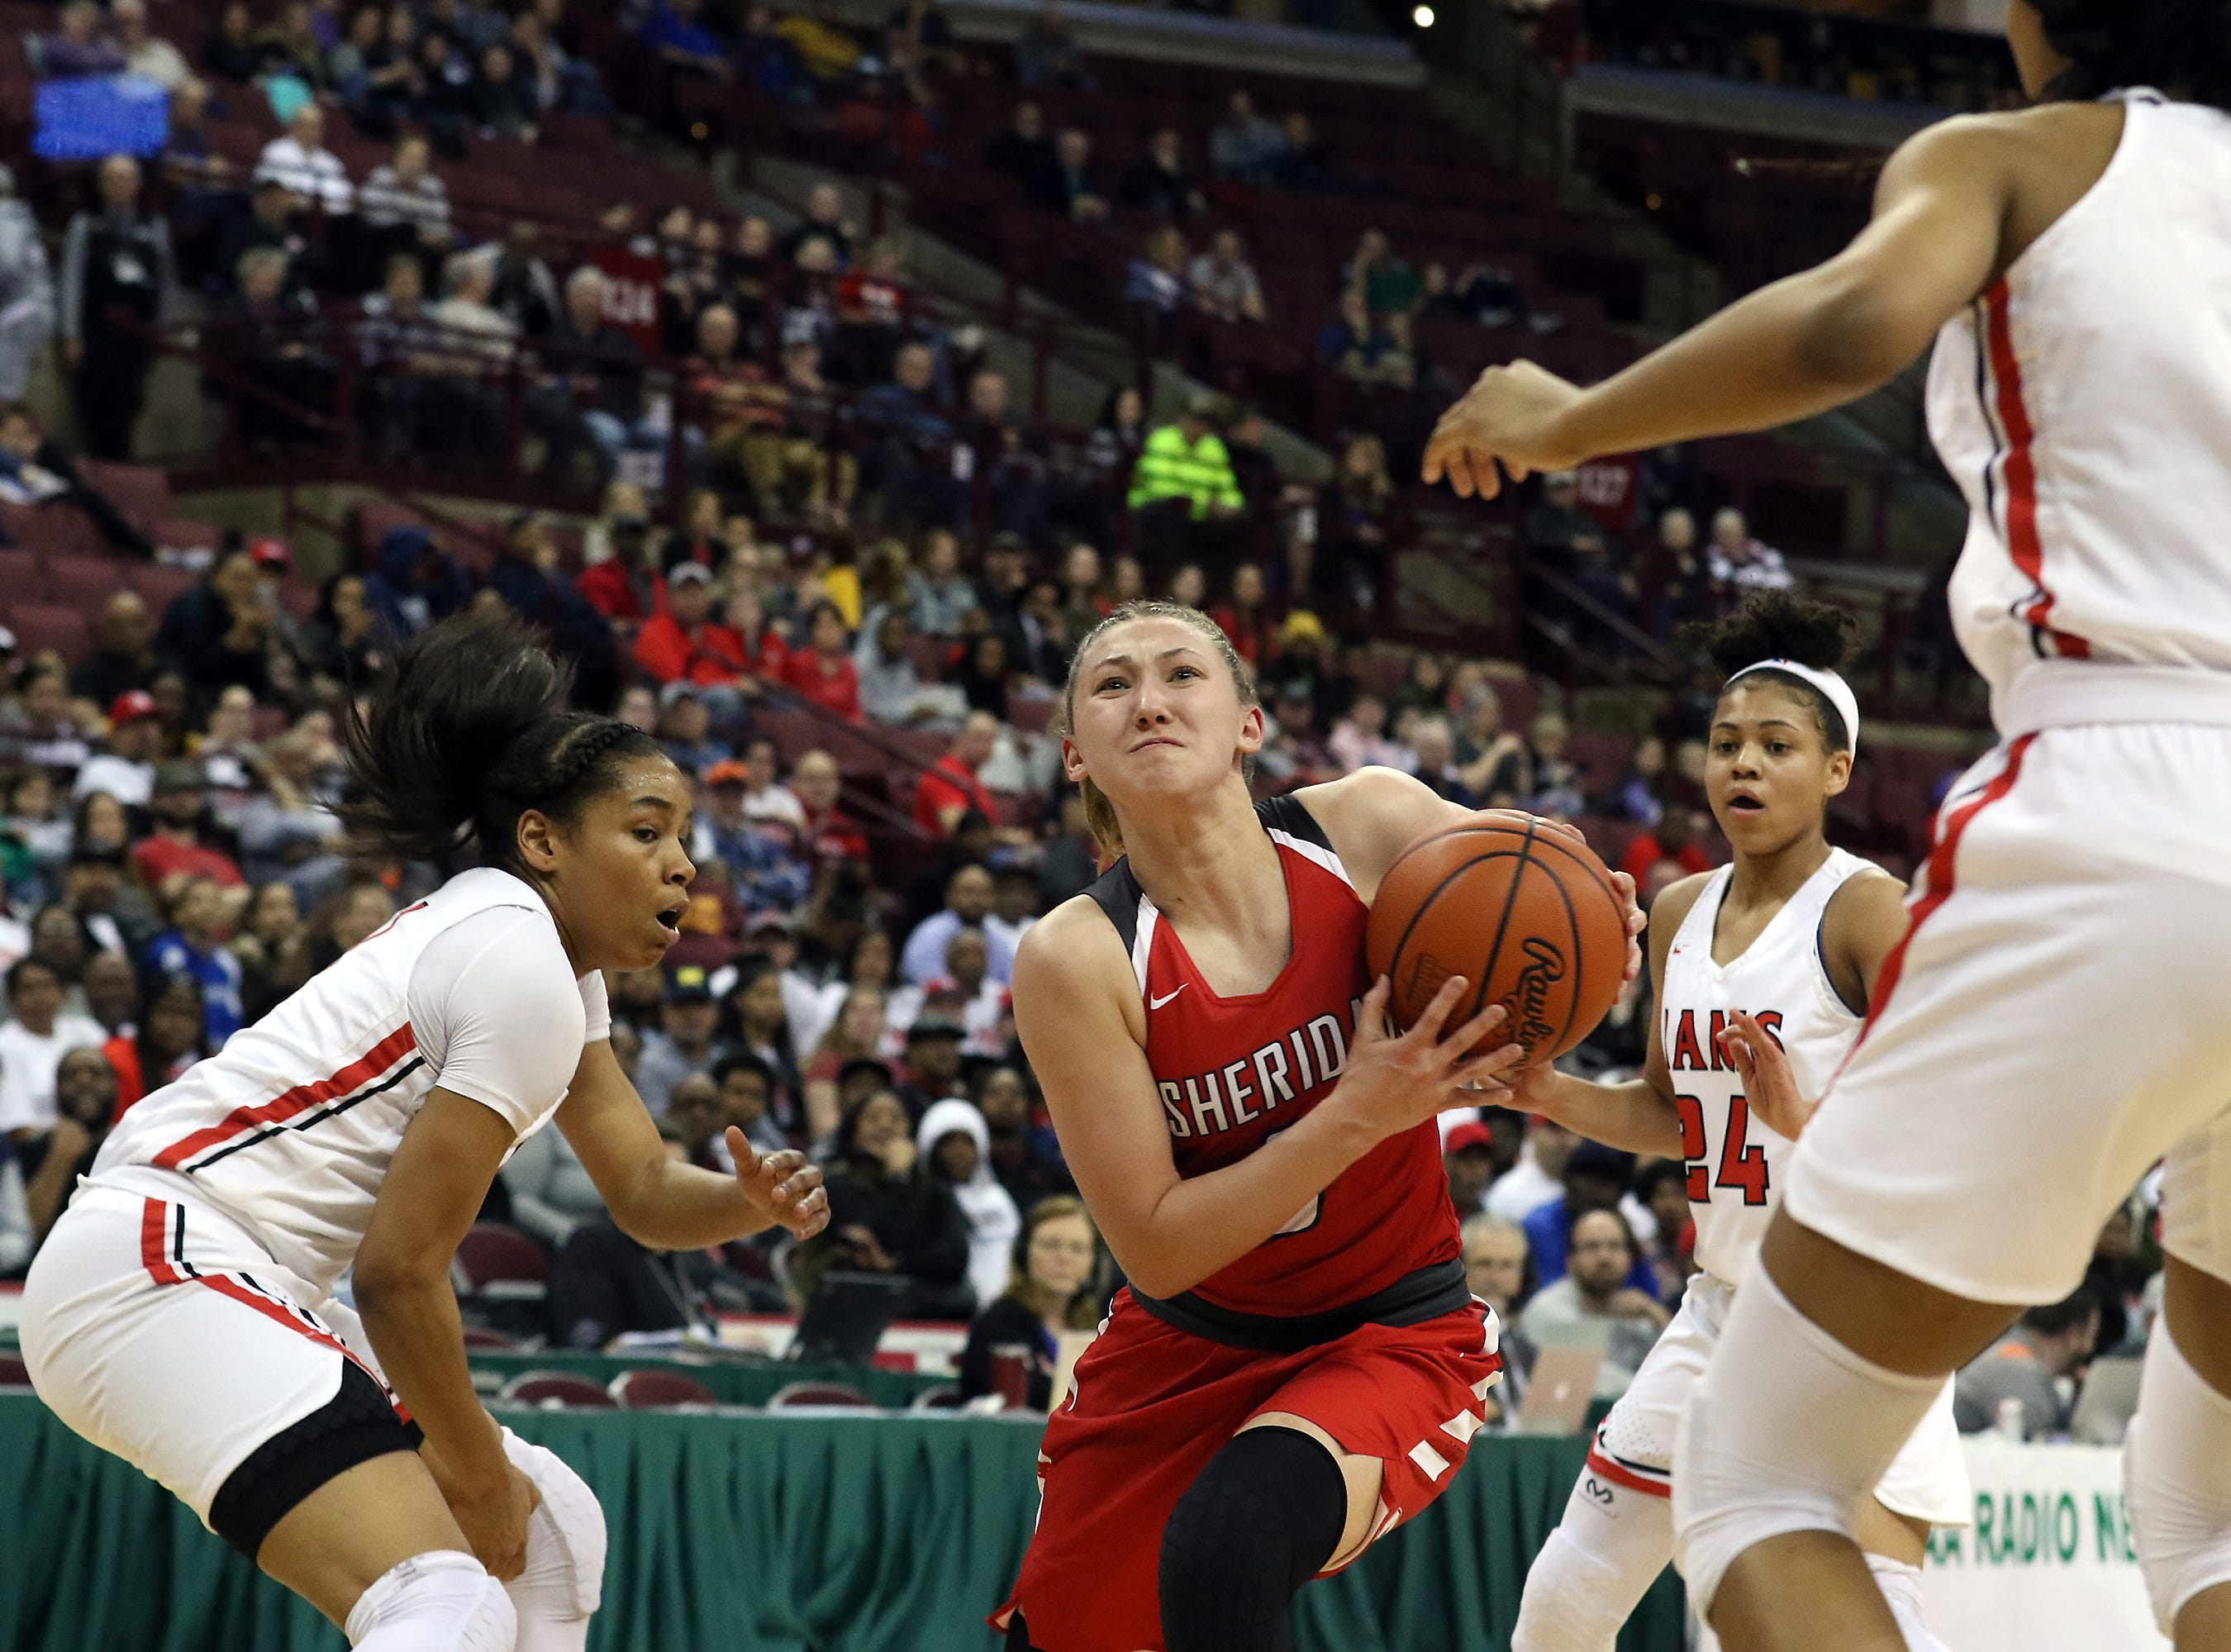 Sheridan's Bailey Beckstedt drives to the hoop against Toledo Rogers during the DII state semis in Columbus on Thursday.